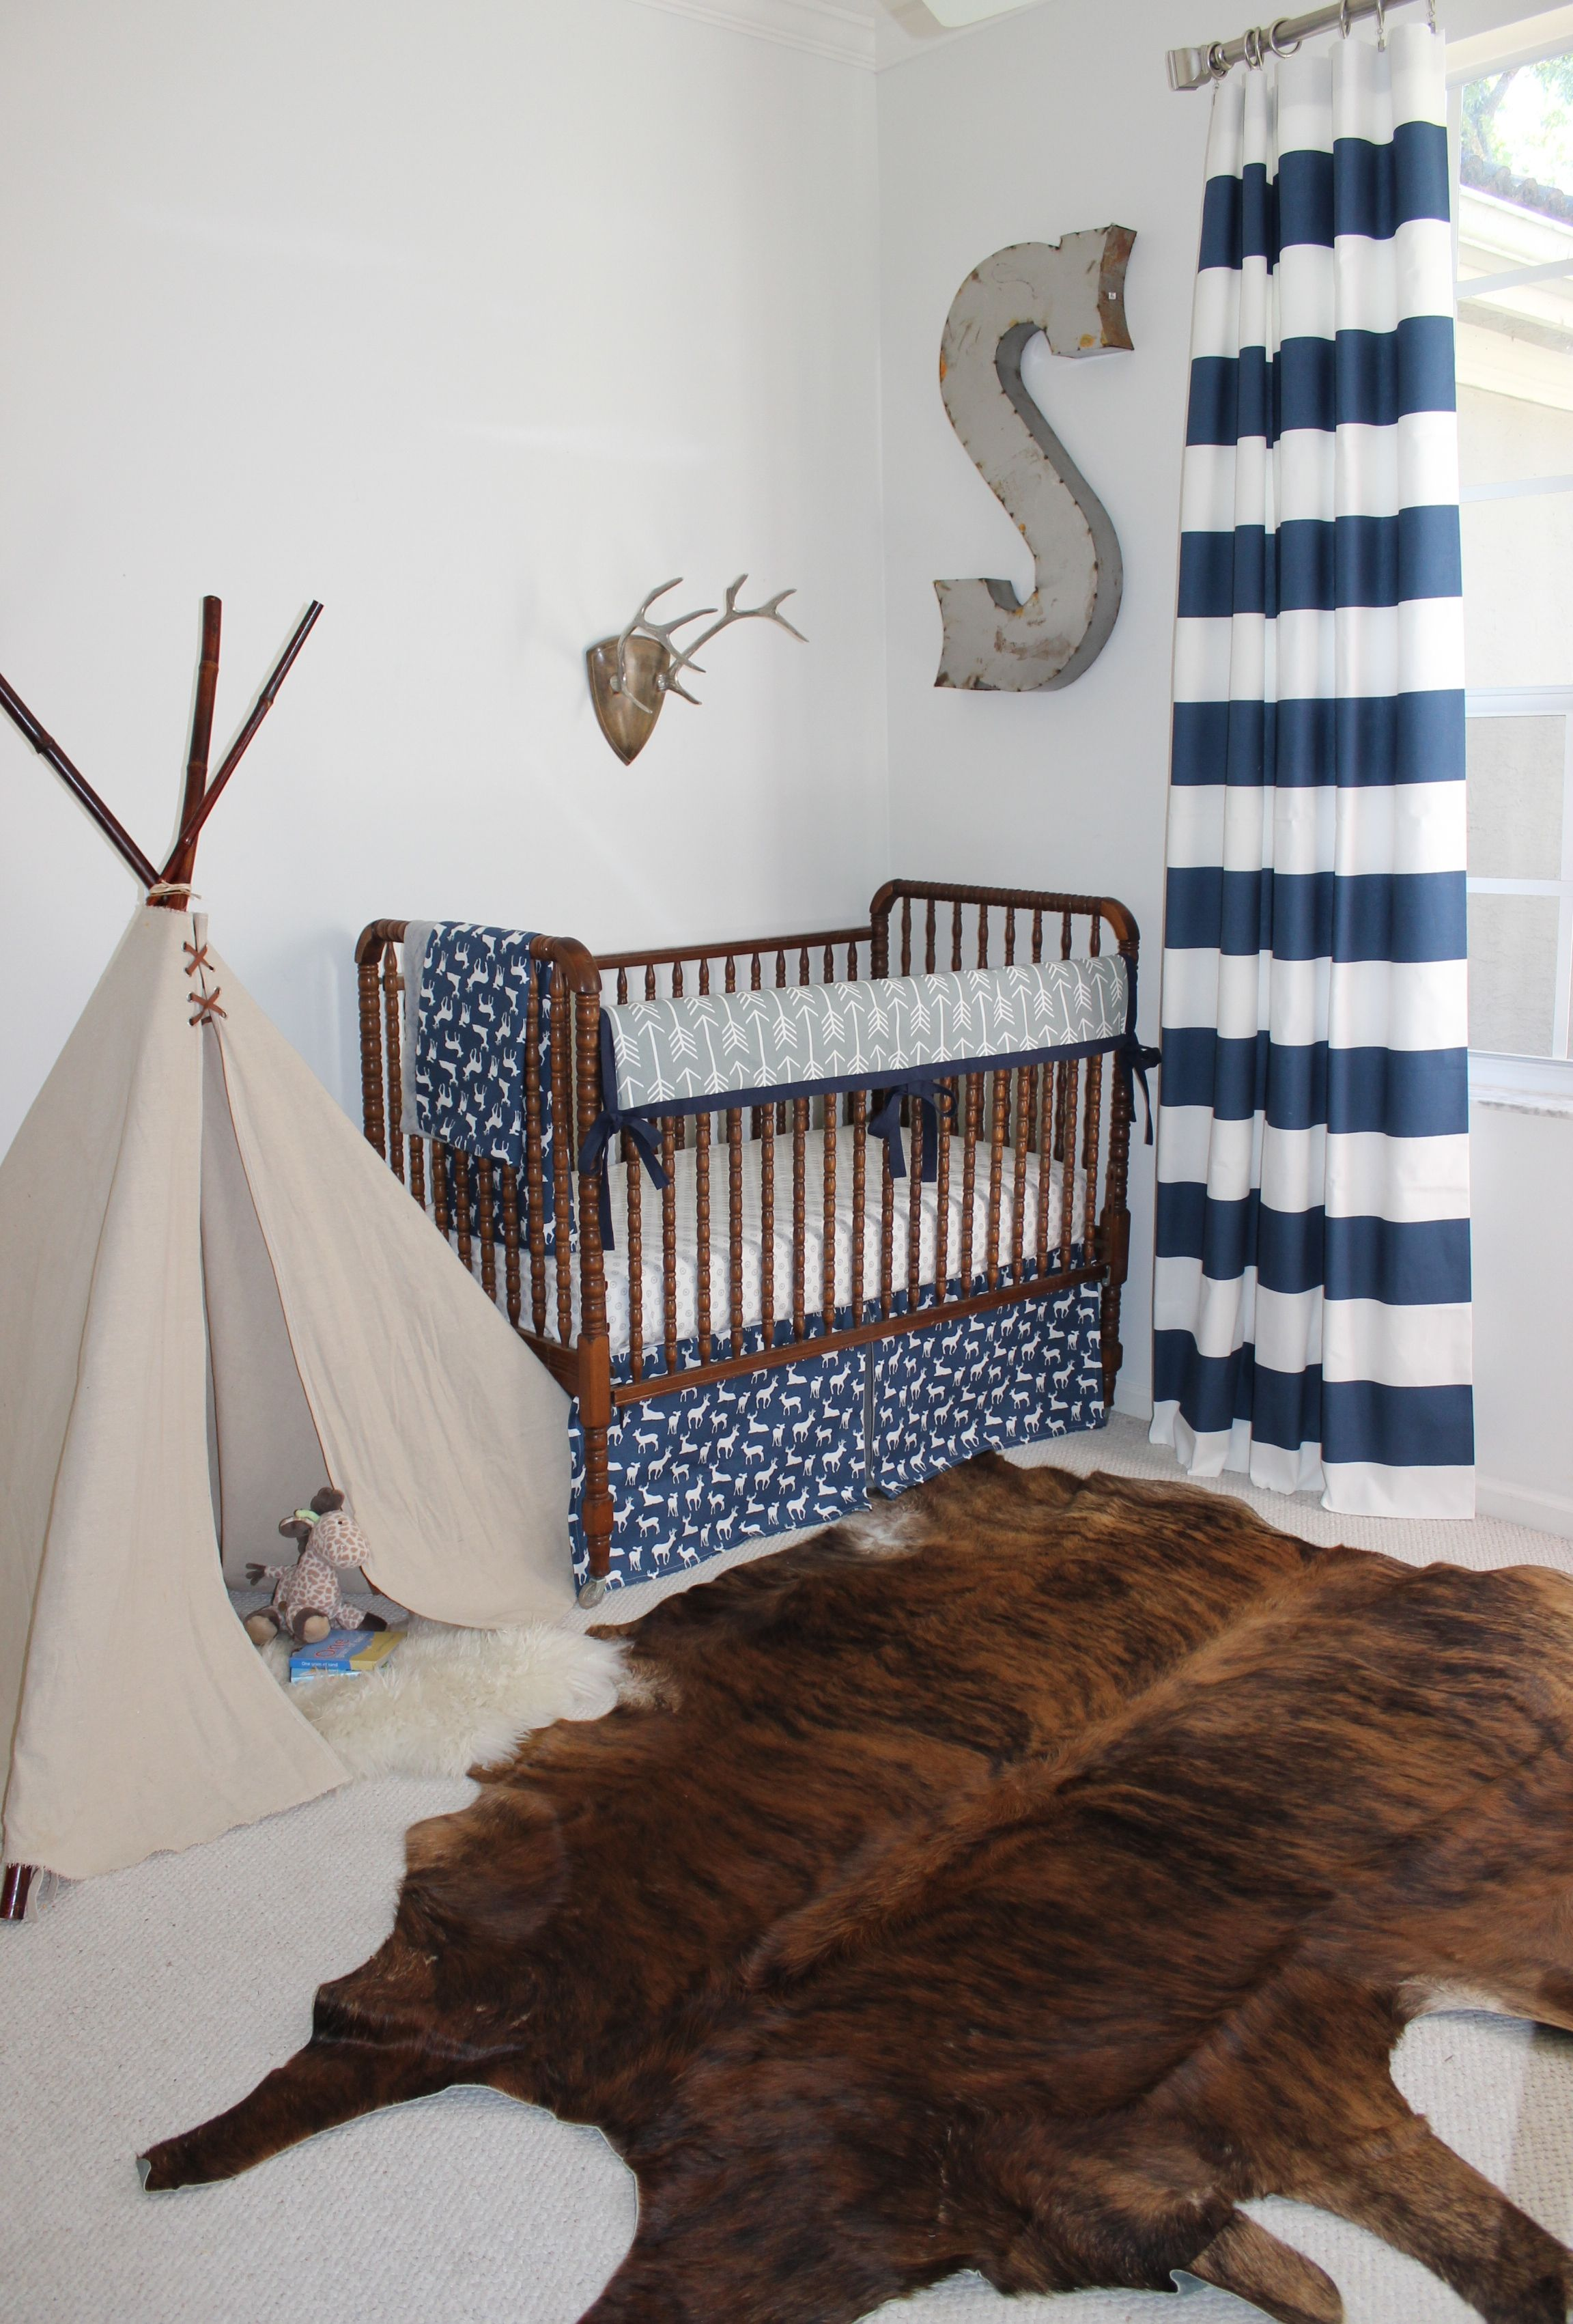 crib bassinets changing full of floor boy cherry size wall baby interactive best together toys feather wood bed drawer cradles image natural to bedding tables ideas contemporary area cribs mattresses blanket rug and types a dresser with lovely